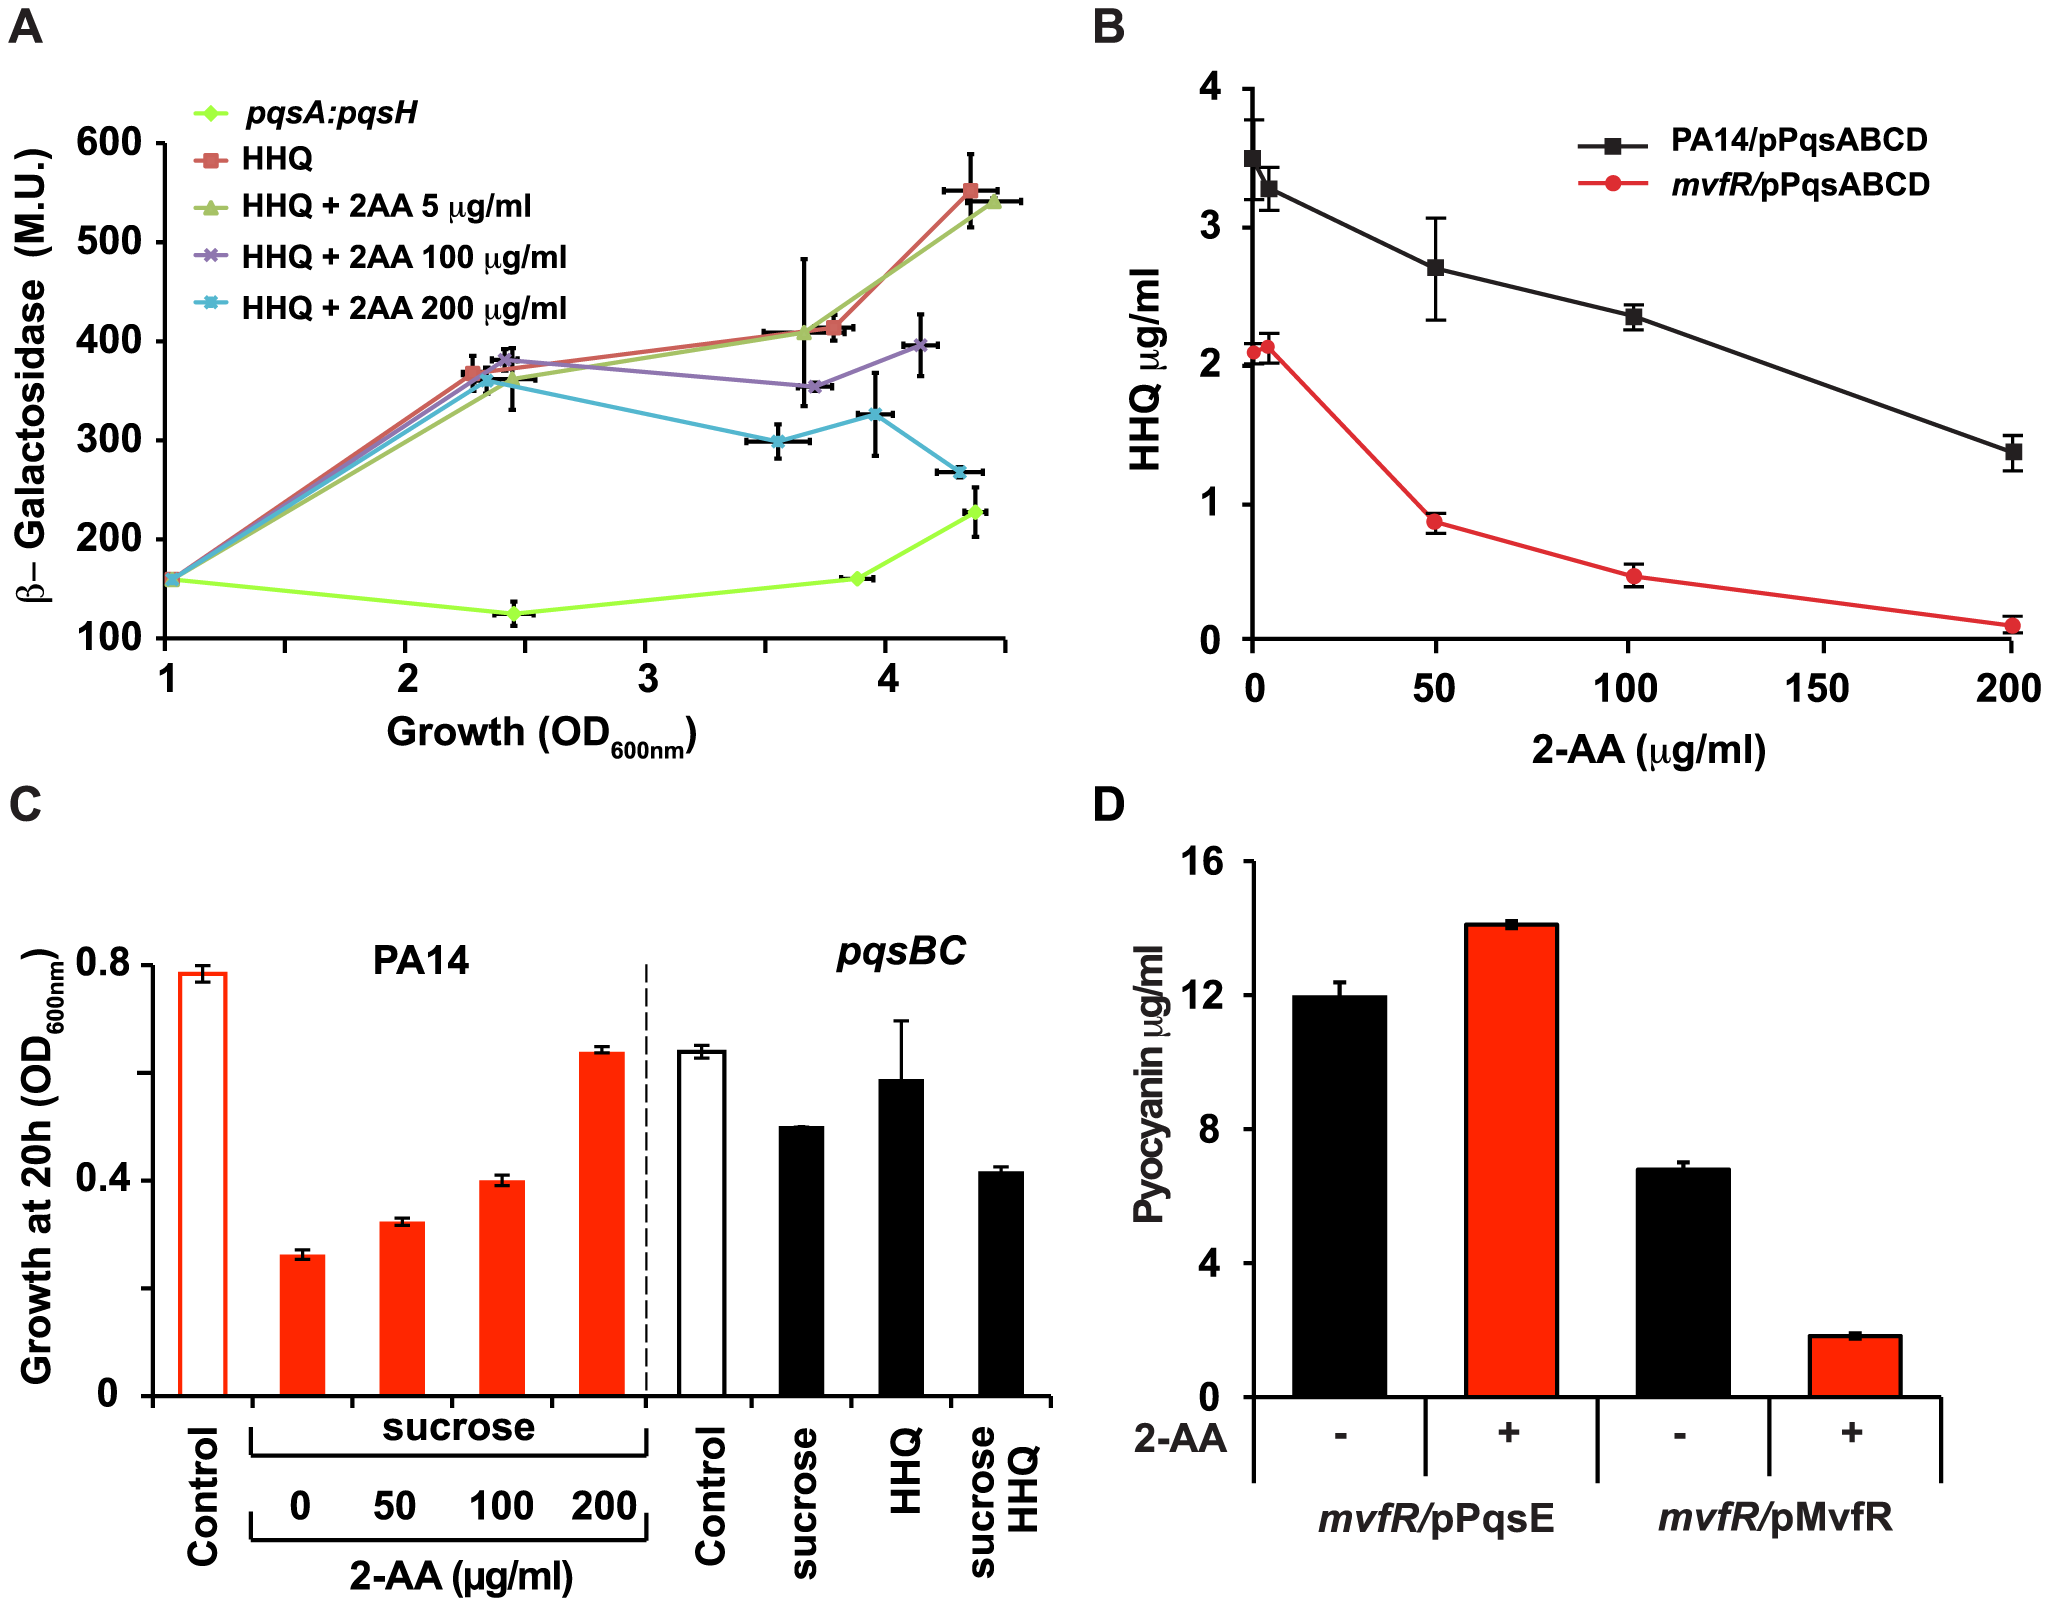 Negative regulation of the MvfR regulon by 2-AA is a result of down-regulation of <i>pqsABCDE</i> expression and interference with MvfR activity via inhibition of HHQ biosynthesis.